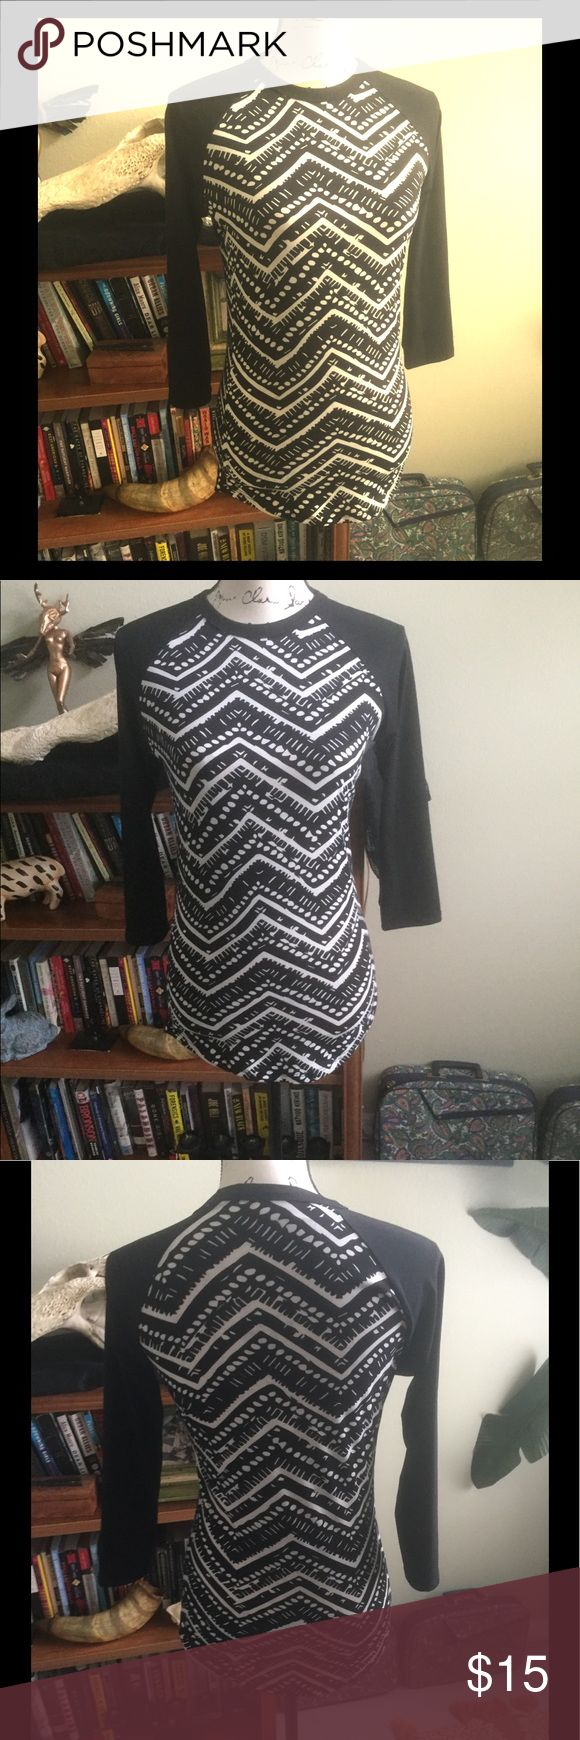 LuLaRoe Black and White 3/4 Long Tee Sz XXS LuLaRoe Black and White 3/4 Long Tee Sz XXS. Good Condition. LuLaRoe Tops Tees - Long Sleeve